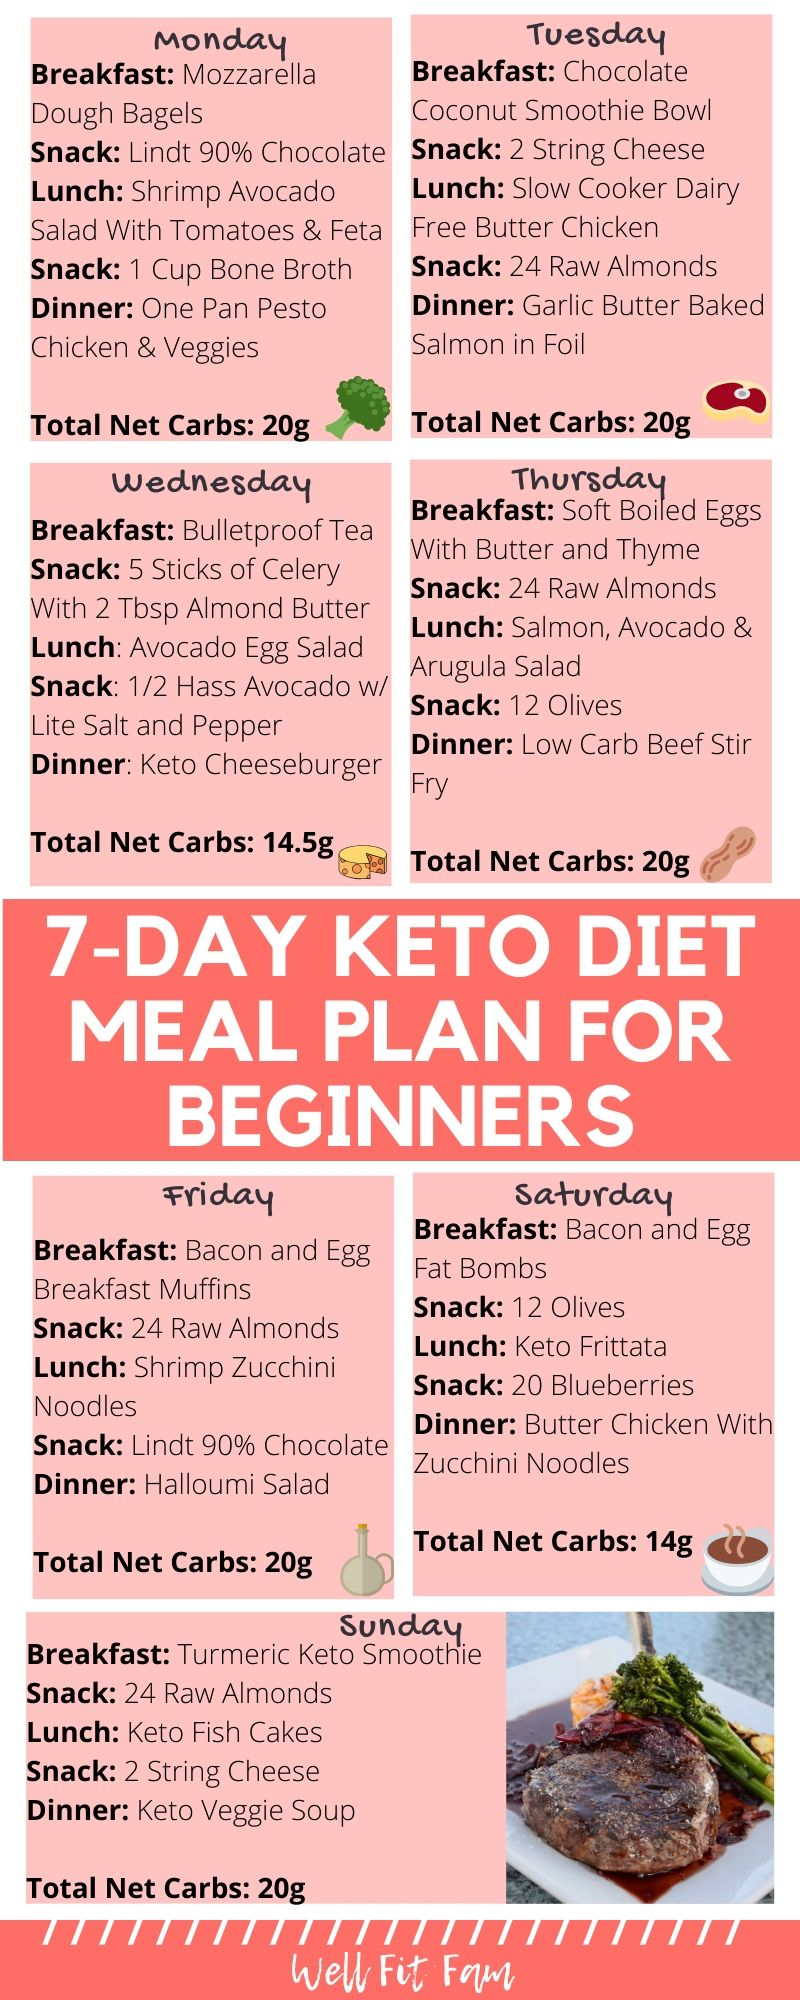 7-day keto diet meal plan for beginners